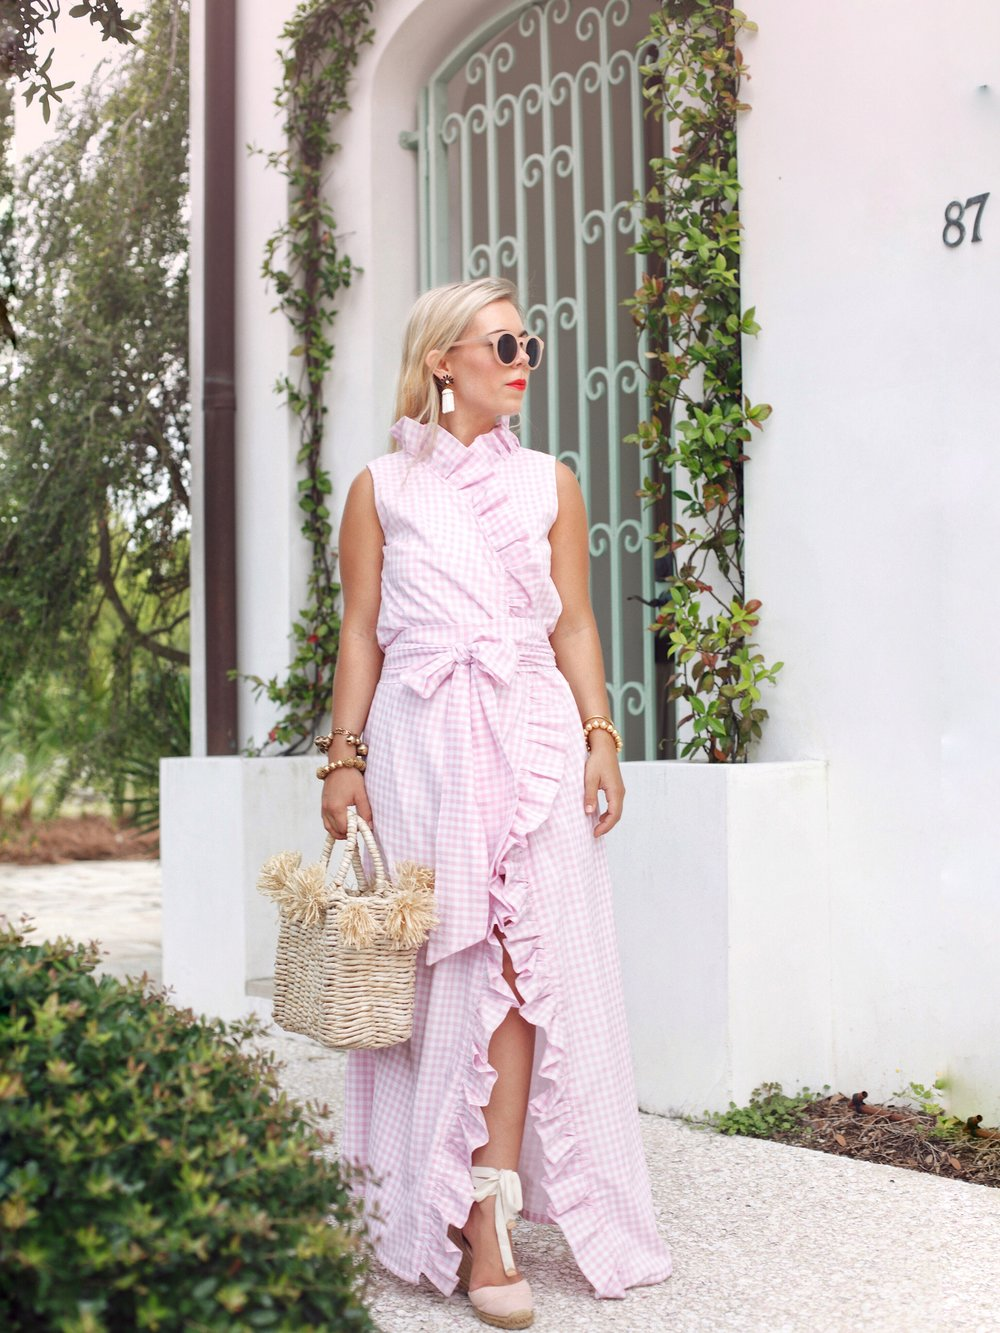 FOR THE LOVE OF GINGHAM! - Our love (obsession, really!) of gingham check continues. You'll find this favorite print of ours scattered throughout our Summer collection.One of our favorite styles for dressier occasions, the Anne Claire Ruffle Wrap Dress is the perfect gingham statement. Shop the Anne Claire Ruffle Wrap Maxi.